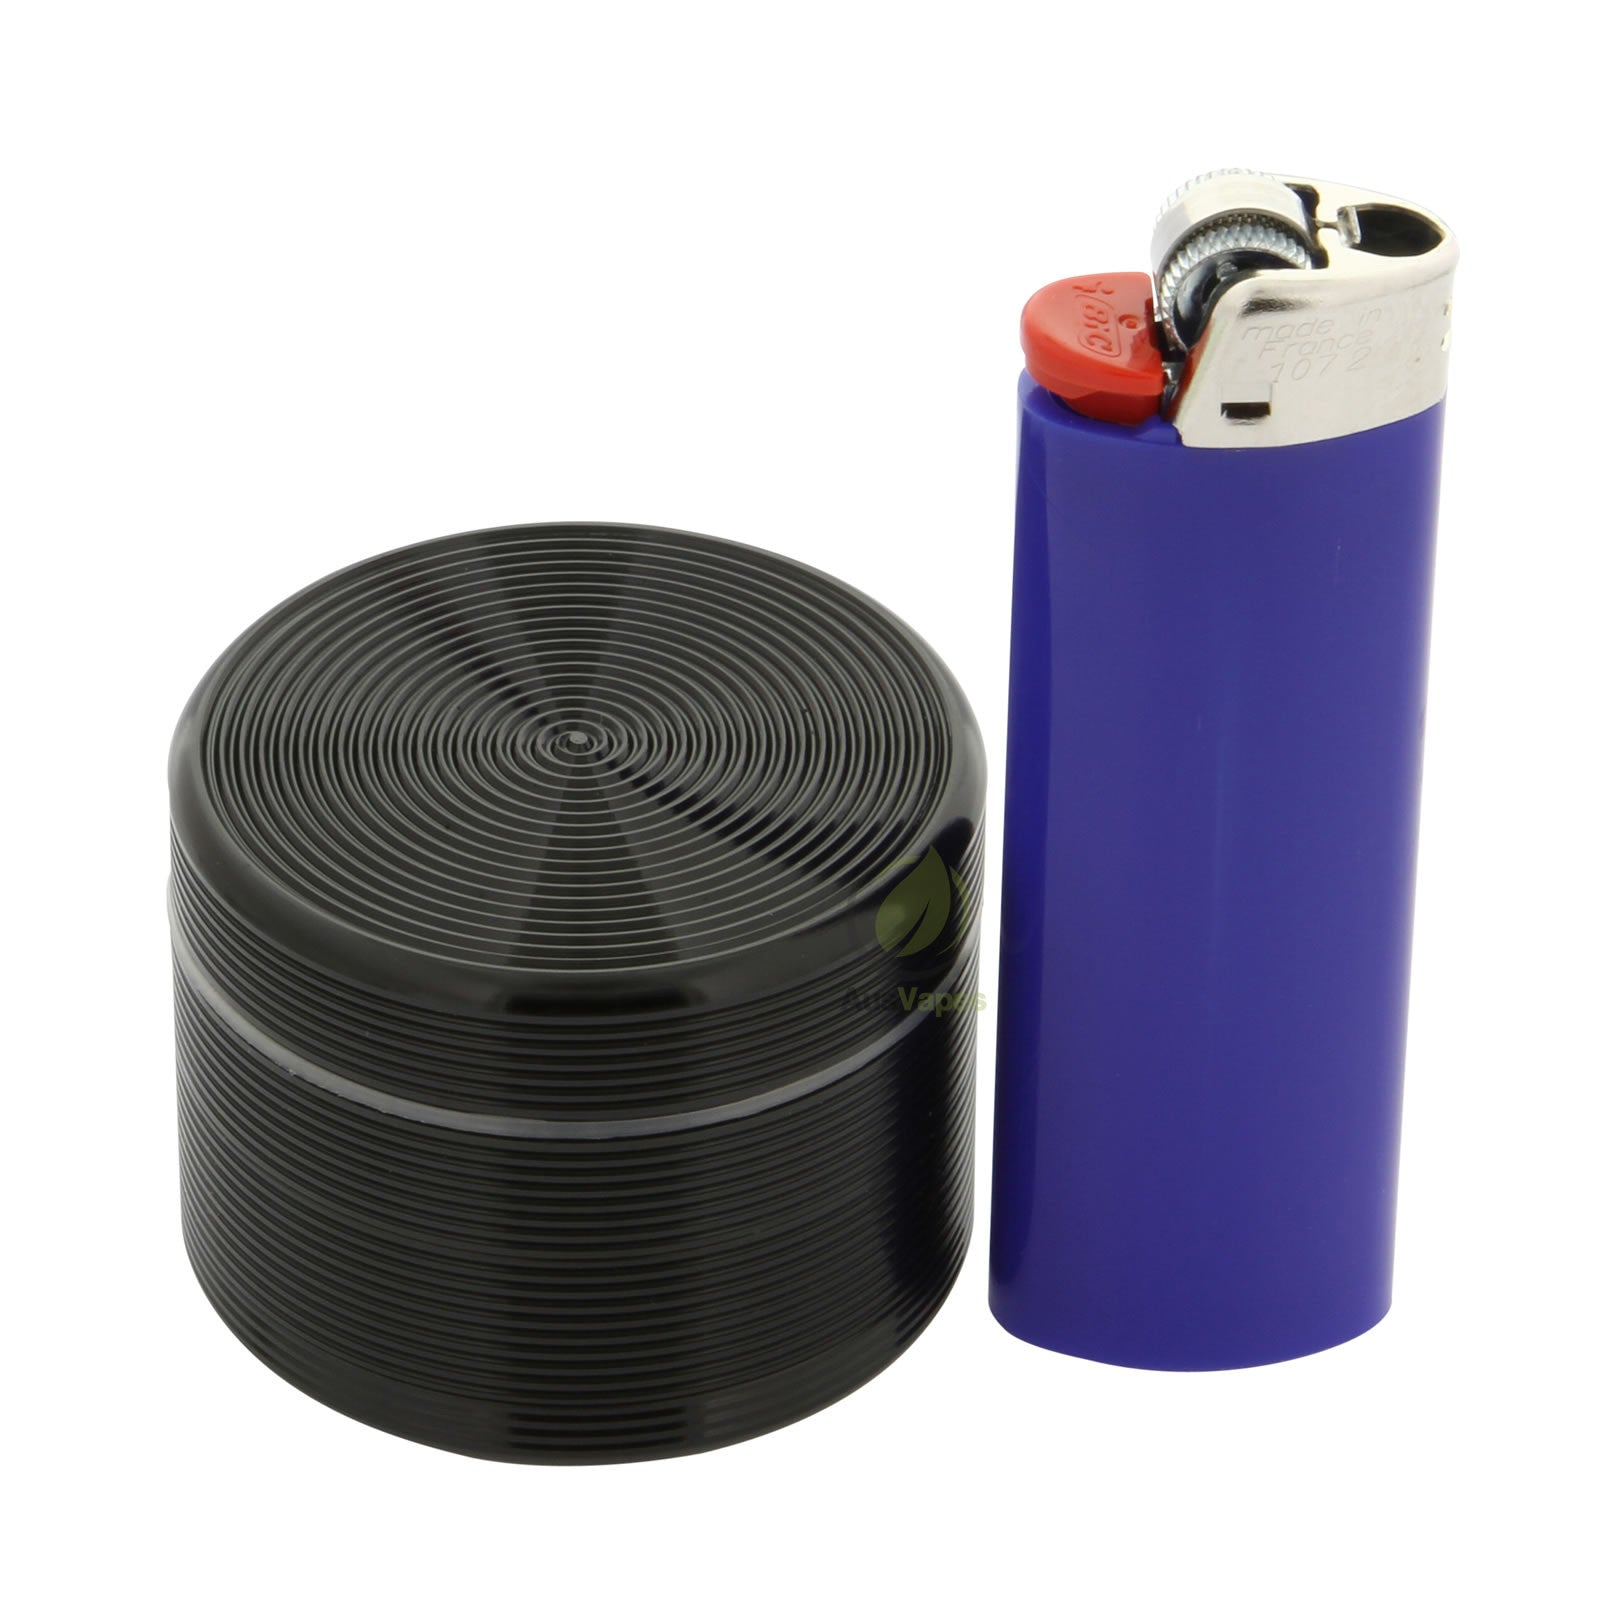 Black Ripple Aluminium Grinder 50mm - 4 pc.